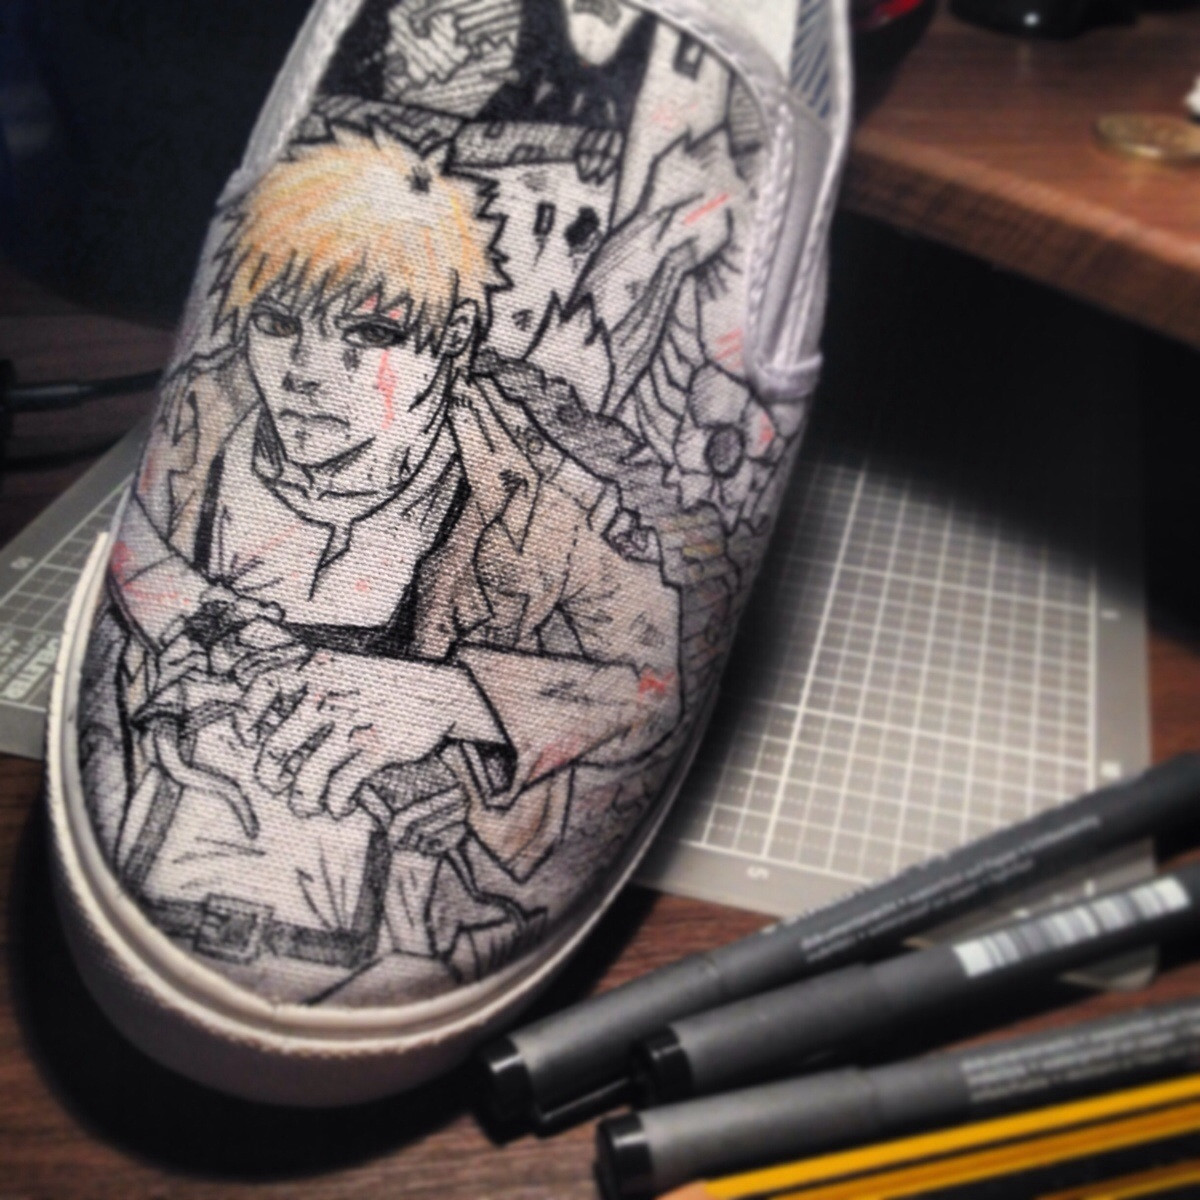 Drawn shoe attack on titan Shoe OlearyBen on x overview